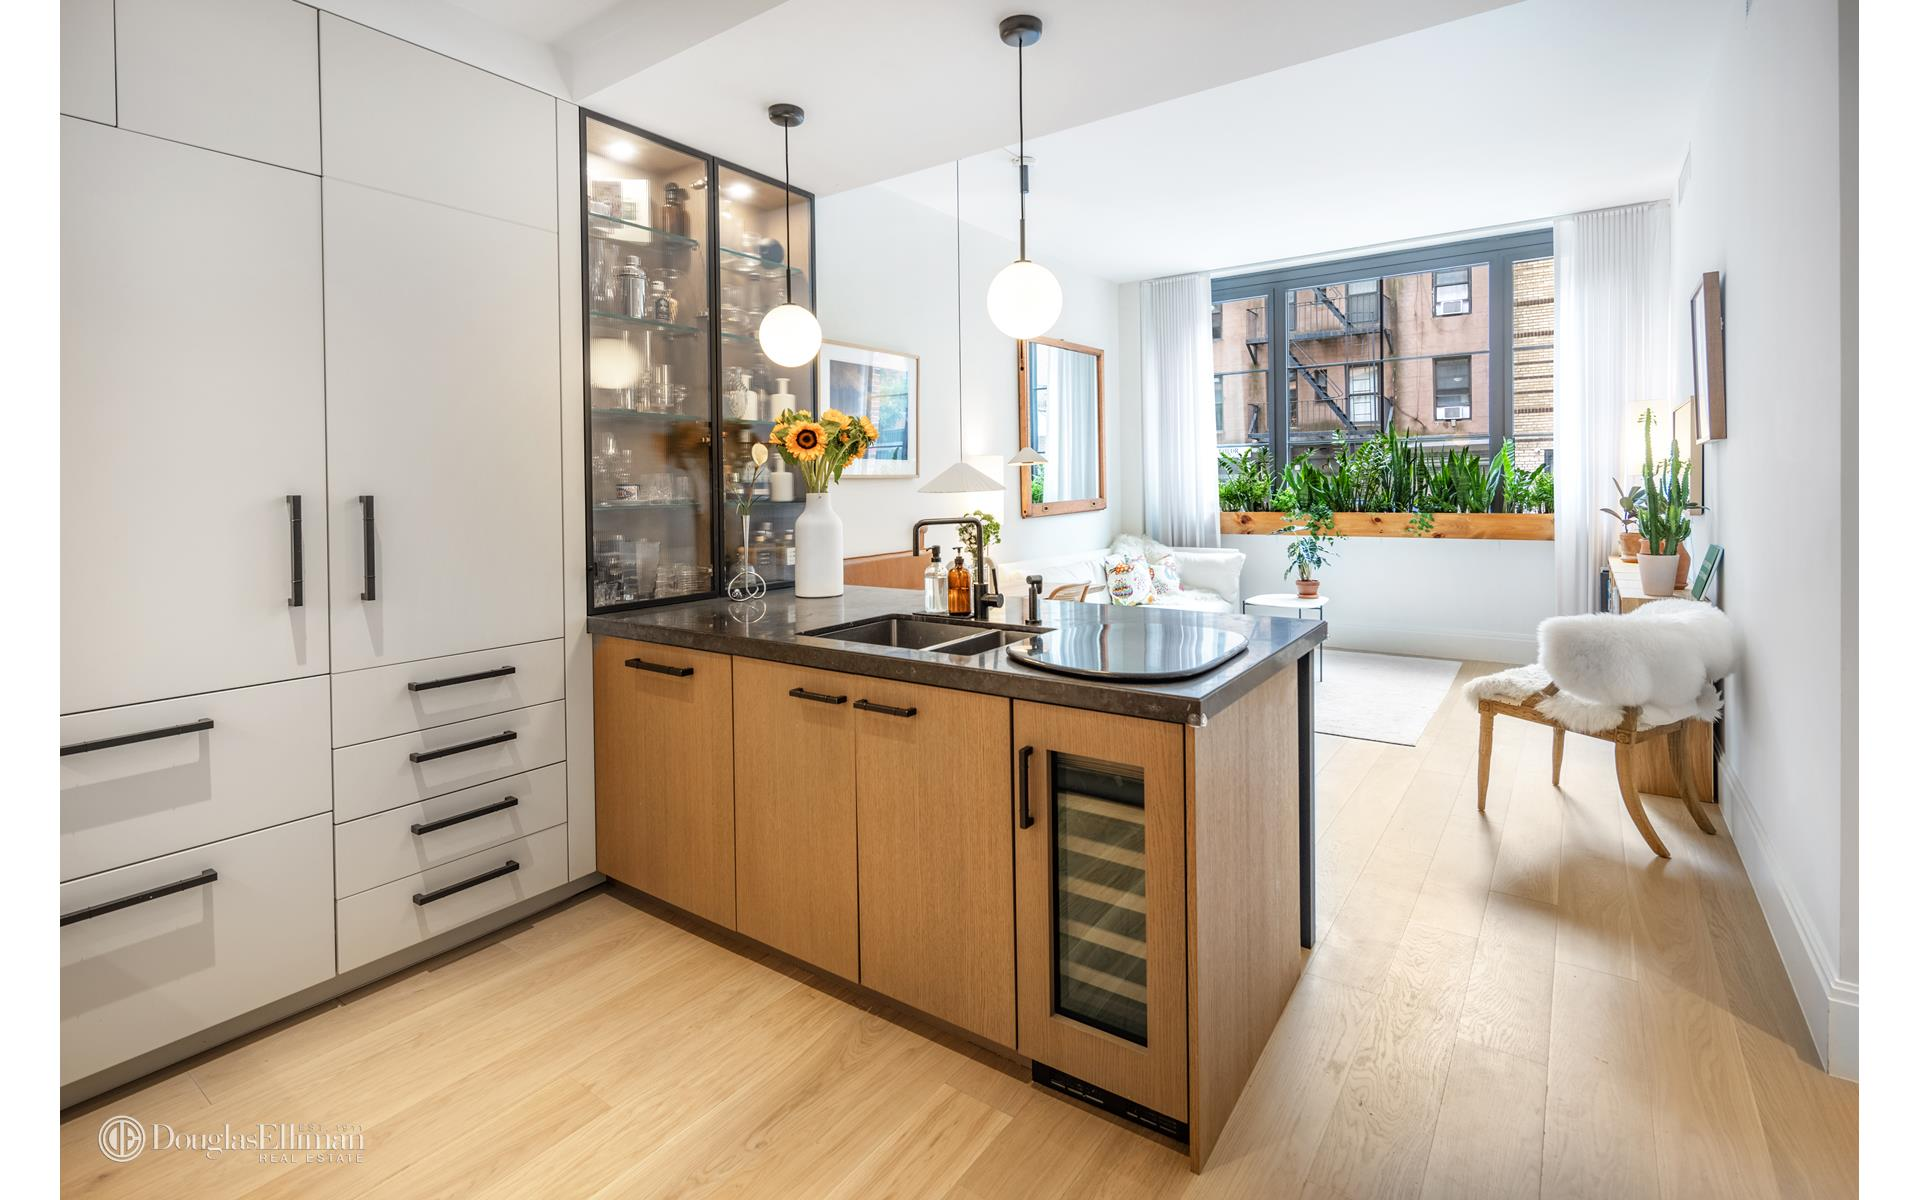 Welcome home to this luxurious residence with gorgeous southern light, high-ceilings, and stunning finishes throughout in the most sought after building in the East Village. This gorgeous apartment is designed with a beautiful south-facing primary bedroom   with a 2nd interior bedroom that is currently set up as child's room that can easily be used as a 2nd bedroom, guest room or home office.    A gracious foyer adorned with Menu lighting greets you into this 975 square foot residence designed by Paris Forino offering gorgeous, oversized casement windows framed in statuary bronze, soaring ceilings up to 10.5ft and a bright southern exposure. Exceptional   interior features include seven-inch-wide plank European white oak flooring, high interior doors with burnished brass hardware and custom architectural millwork throughout. Satin lacquer custom Italian cabinetry, limestone and Calacatta marble countertops,   Menu lighting and blackened metal hardware compose the expertly crafted kitchen equipped with appliances by Wolf, Bosch and Sub-Zero.    The master suite is a true sanctuary again with a light-filled southern exposure, generously sized to accommodate a king-sized bed, a walk-in closet with California closets and an en-suite master bath highlighted by luminous design details. The serene space   features Bianco Carrara honed mosaic floors and a Custom-cerused white oak vanity with a Bianco Dolomiti countertop.    The home office has been beautifully designed with custom glass door and wall that captures the essence of the casement windows allowing for privacy but still allowing light to come into the space. This room also includes a large closet outfitted with custom   California closets. A space that is perfect as an additional bedroom or office.     The dramatic powder room which is just off the living space offers watercolor glazed penny round mosaic walls, custom lighting, and a corner-wrapping vanity mirror. Chrome fittings by Waterworks are featured through